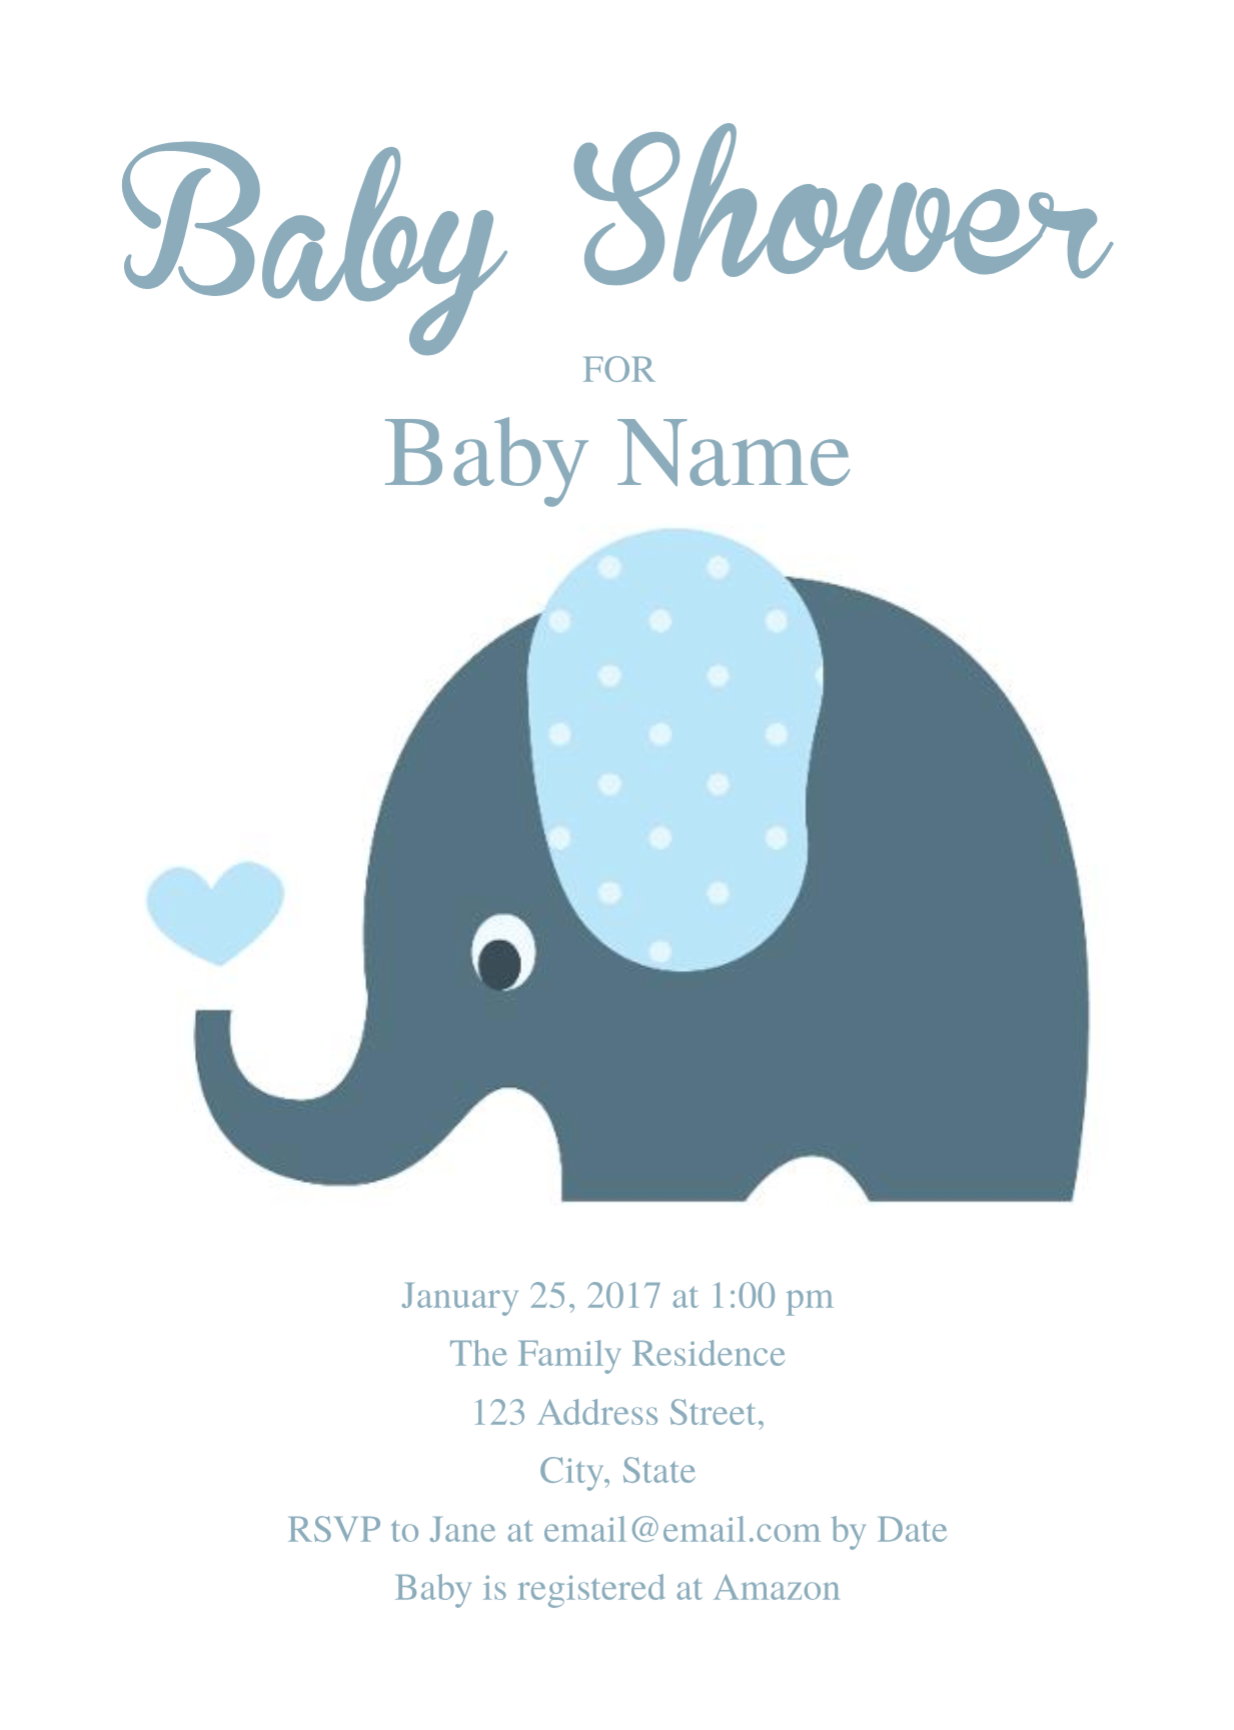 Boy's Baby Shower Invitation Template | Customize this invitation template  online with only a few clicks!